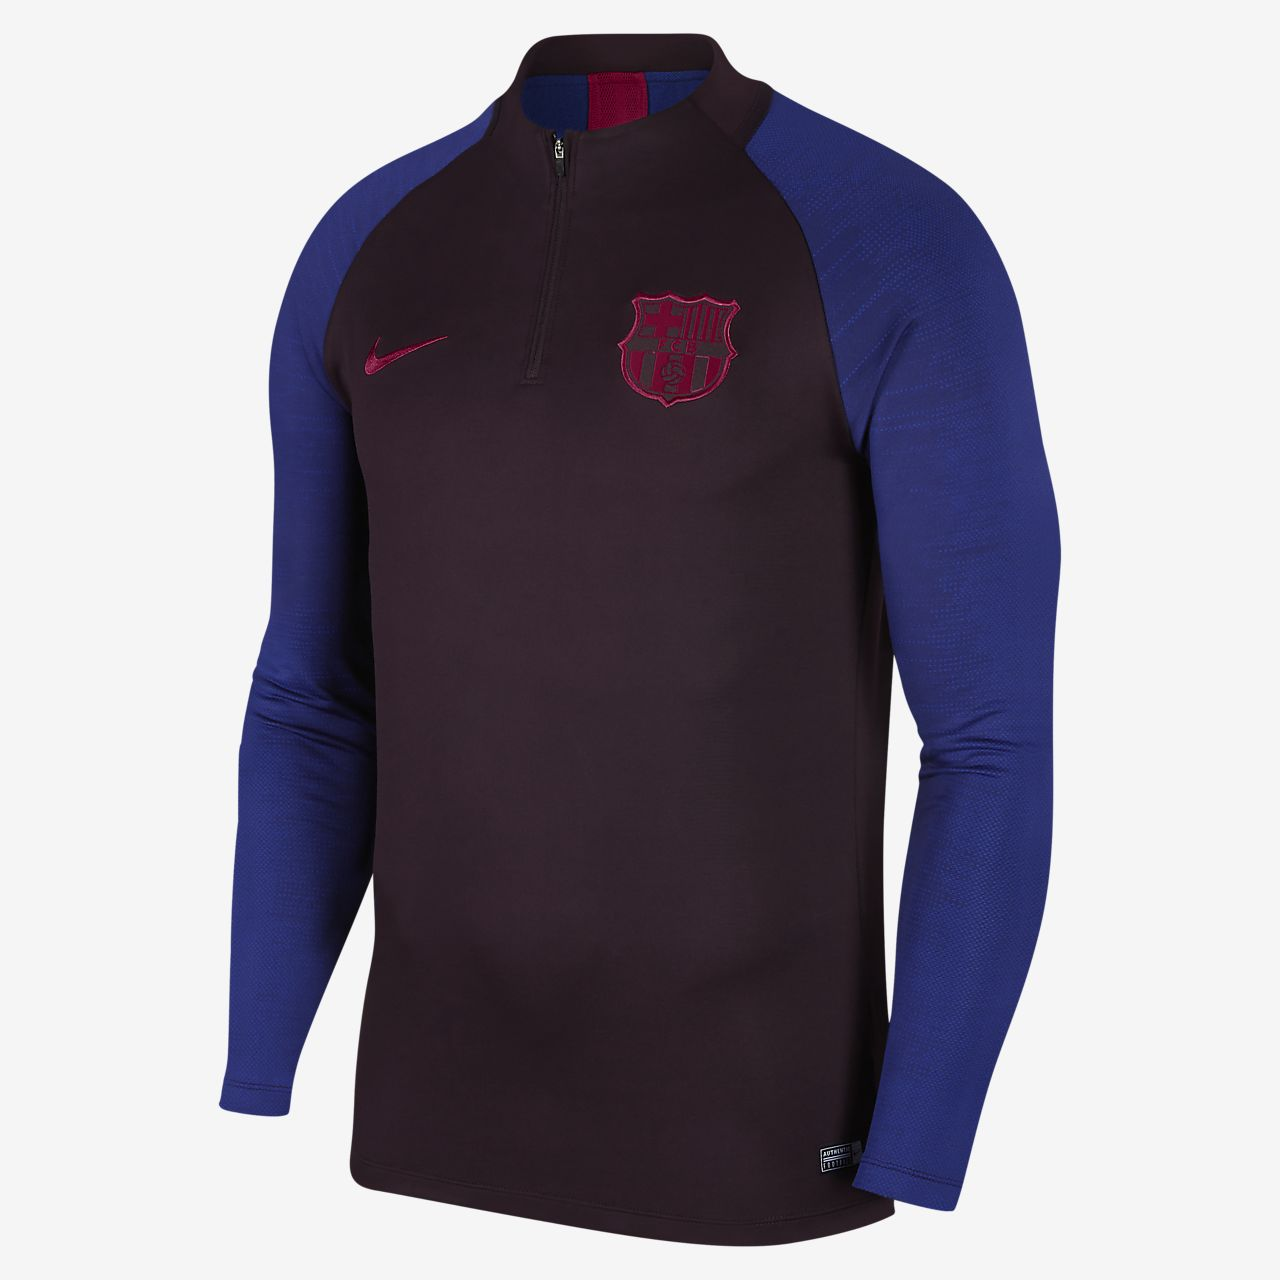 Nike Dri-FIT FC Barcelona Strike Men's Football Drill Top